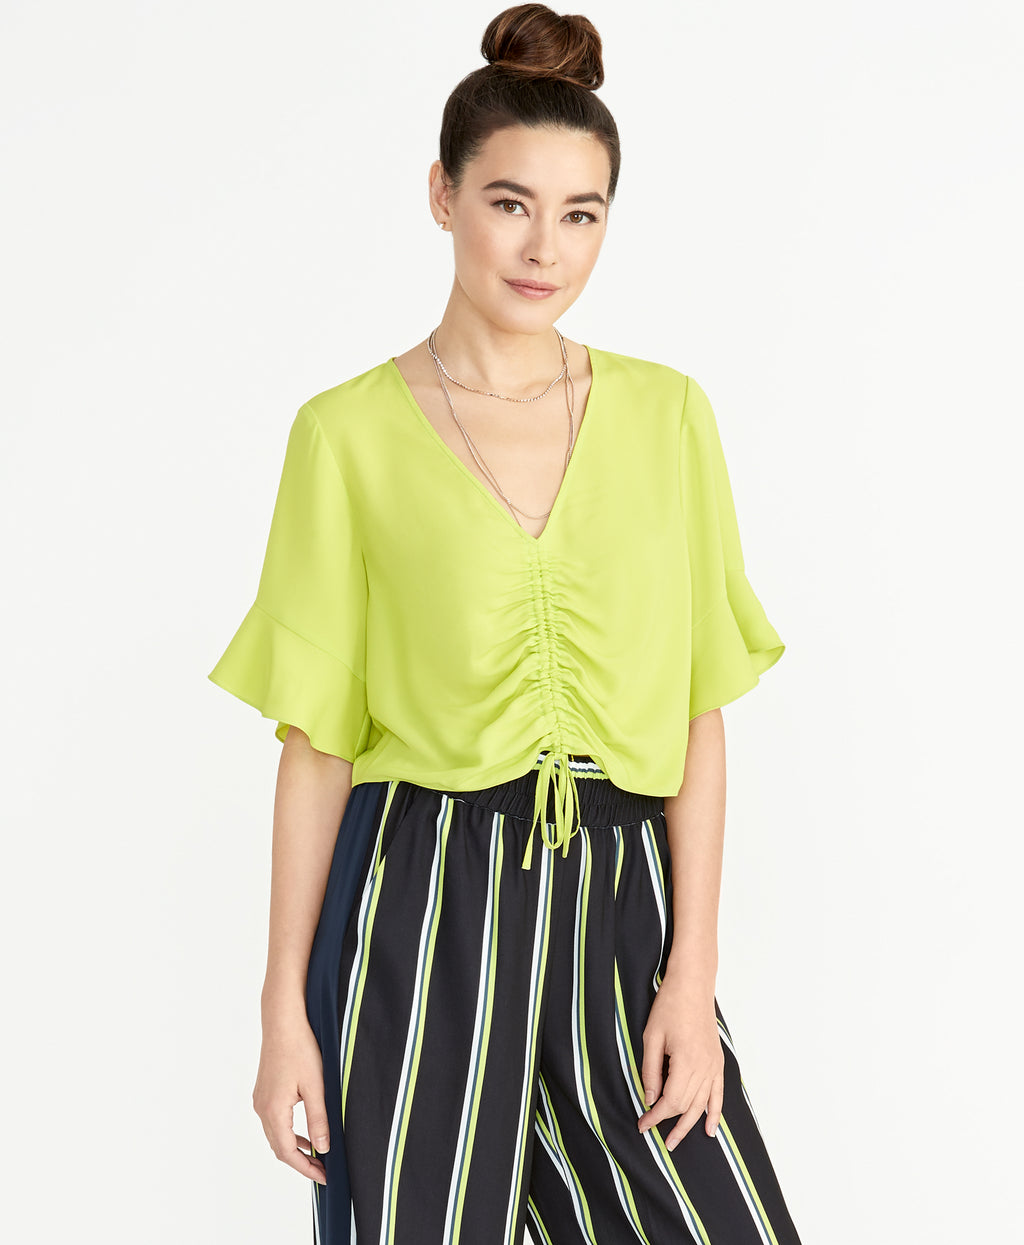 Siena  Top | Lime Green